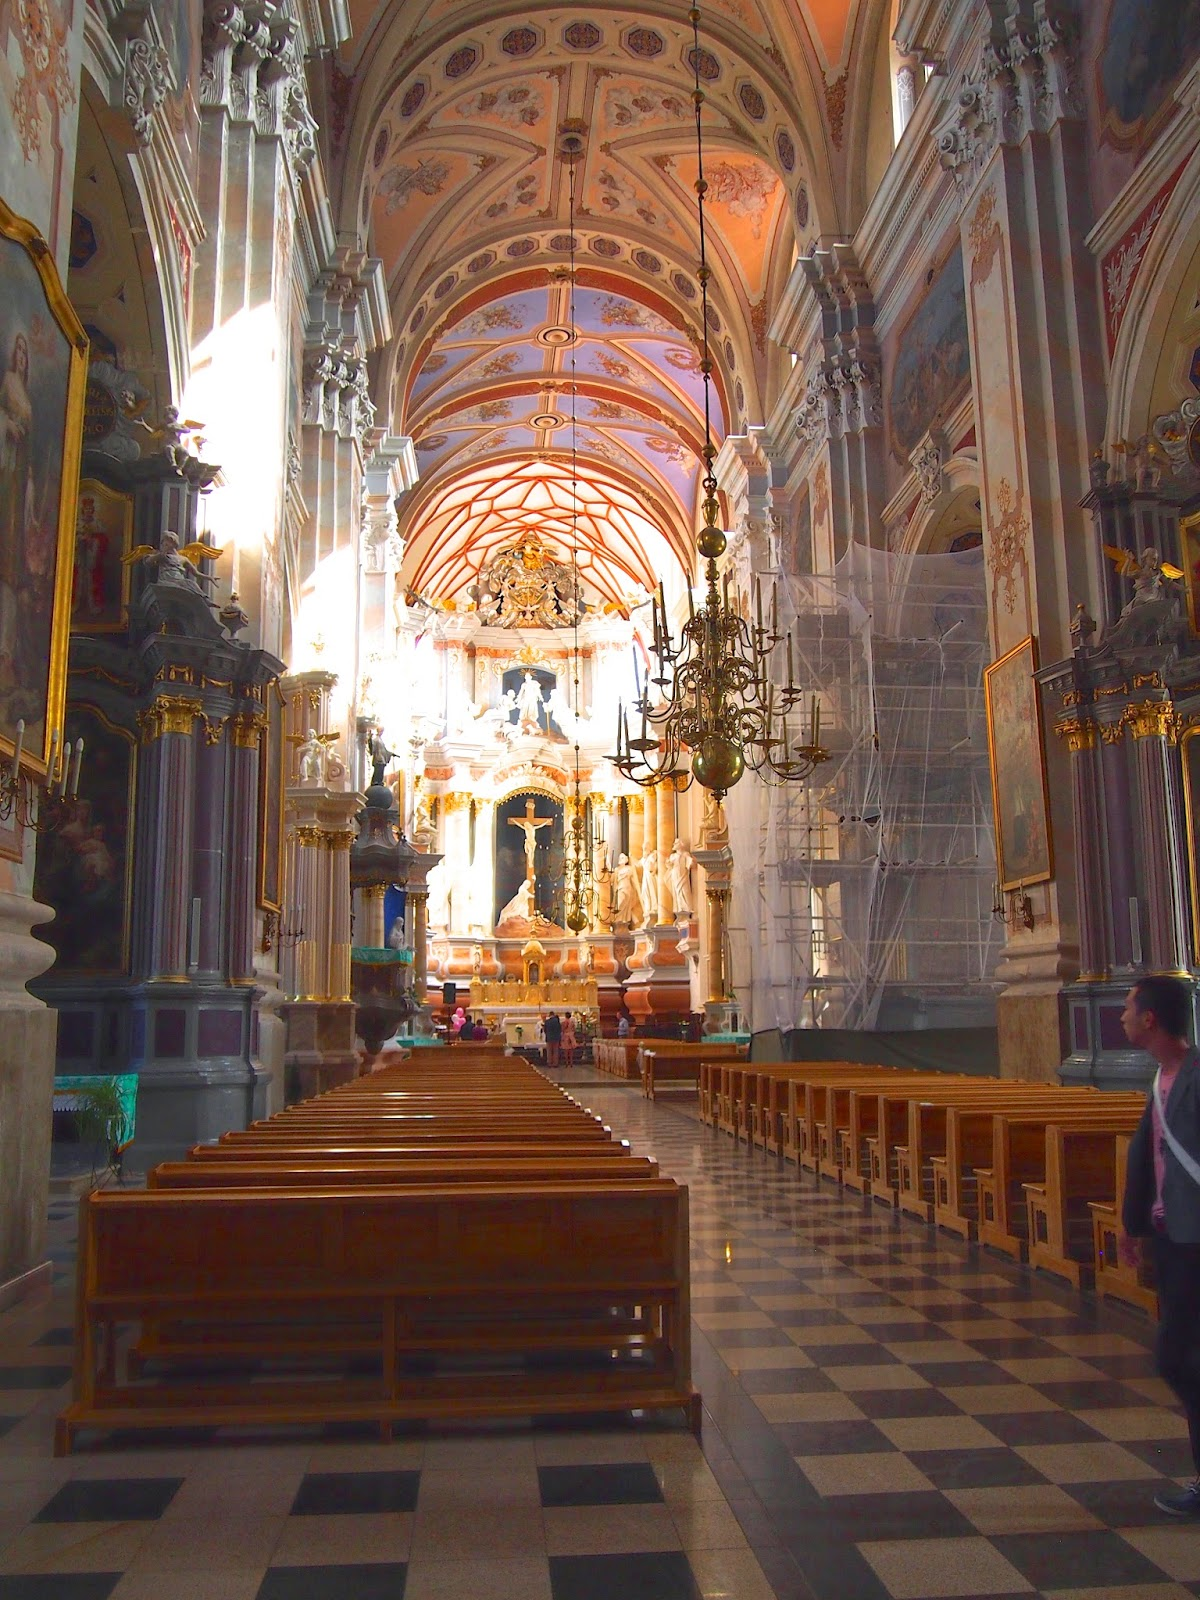 The detailed interior and bright ceilings in the Cathedral of Sts. Peter and Paul